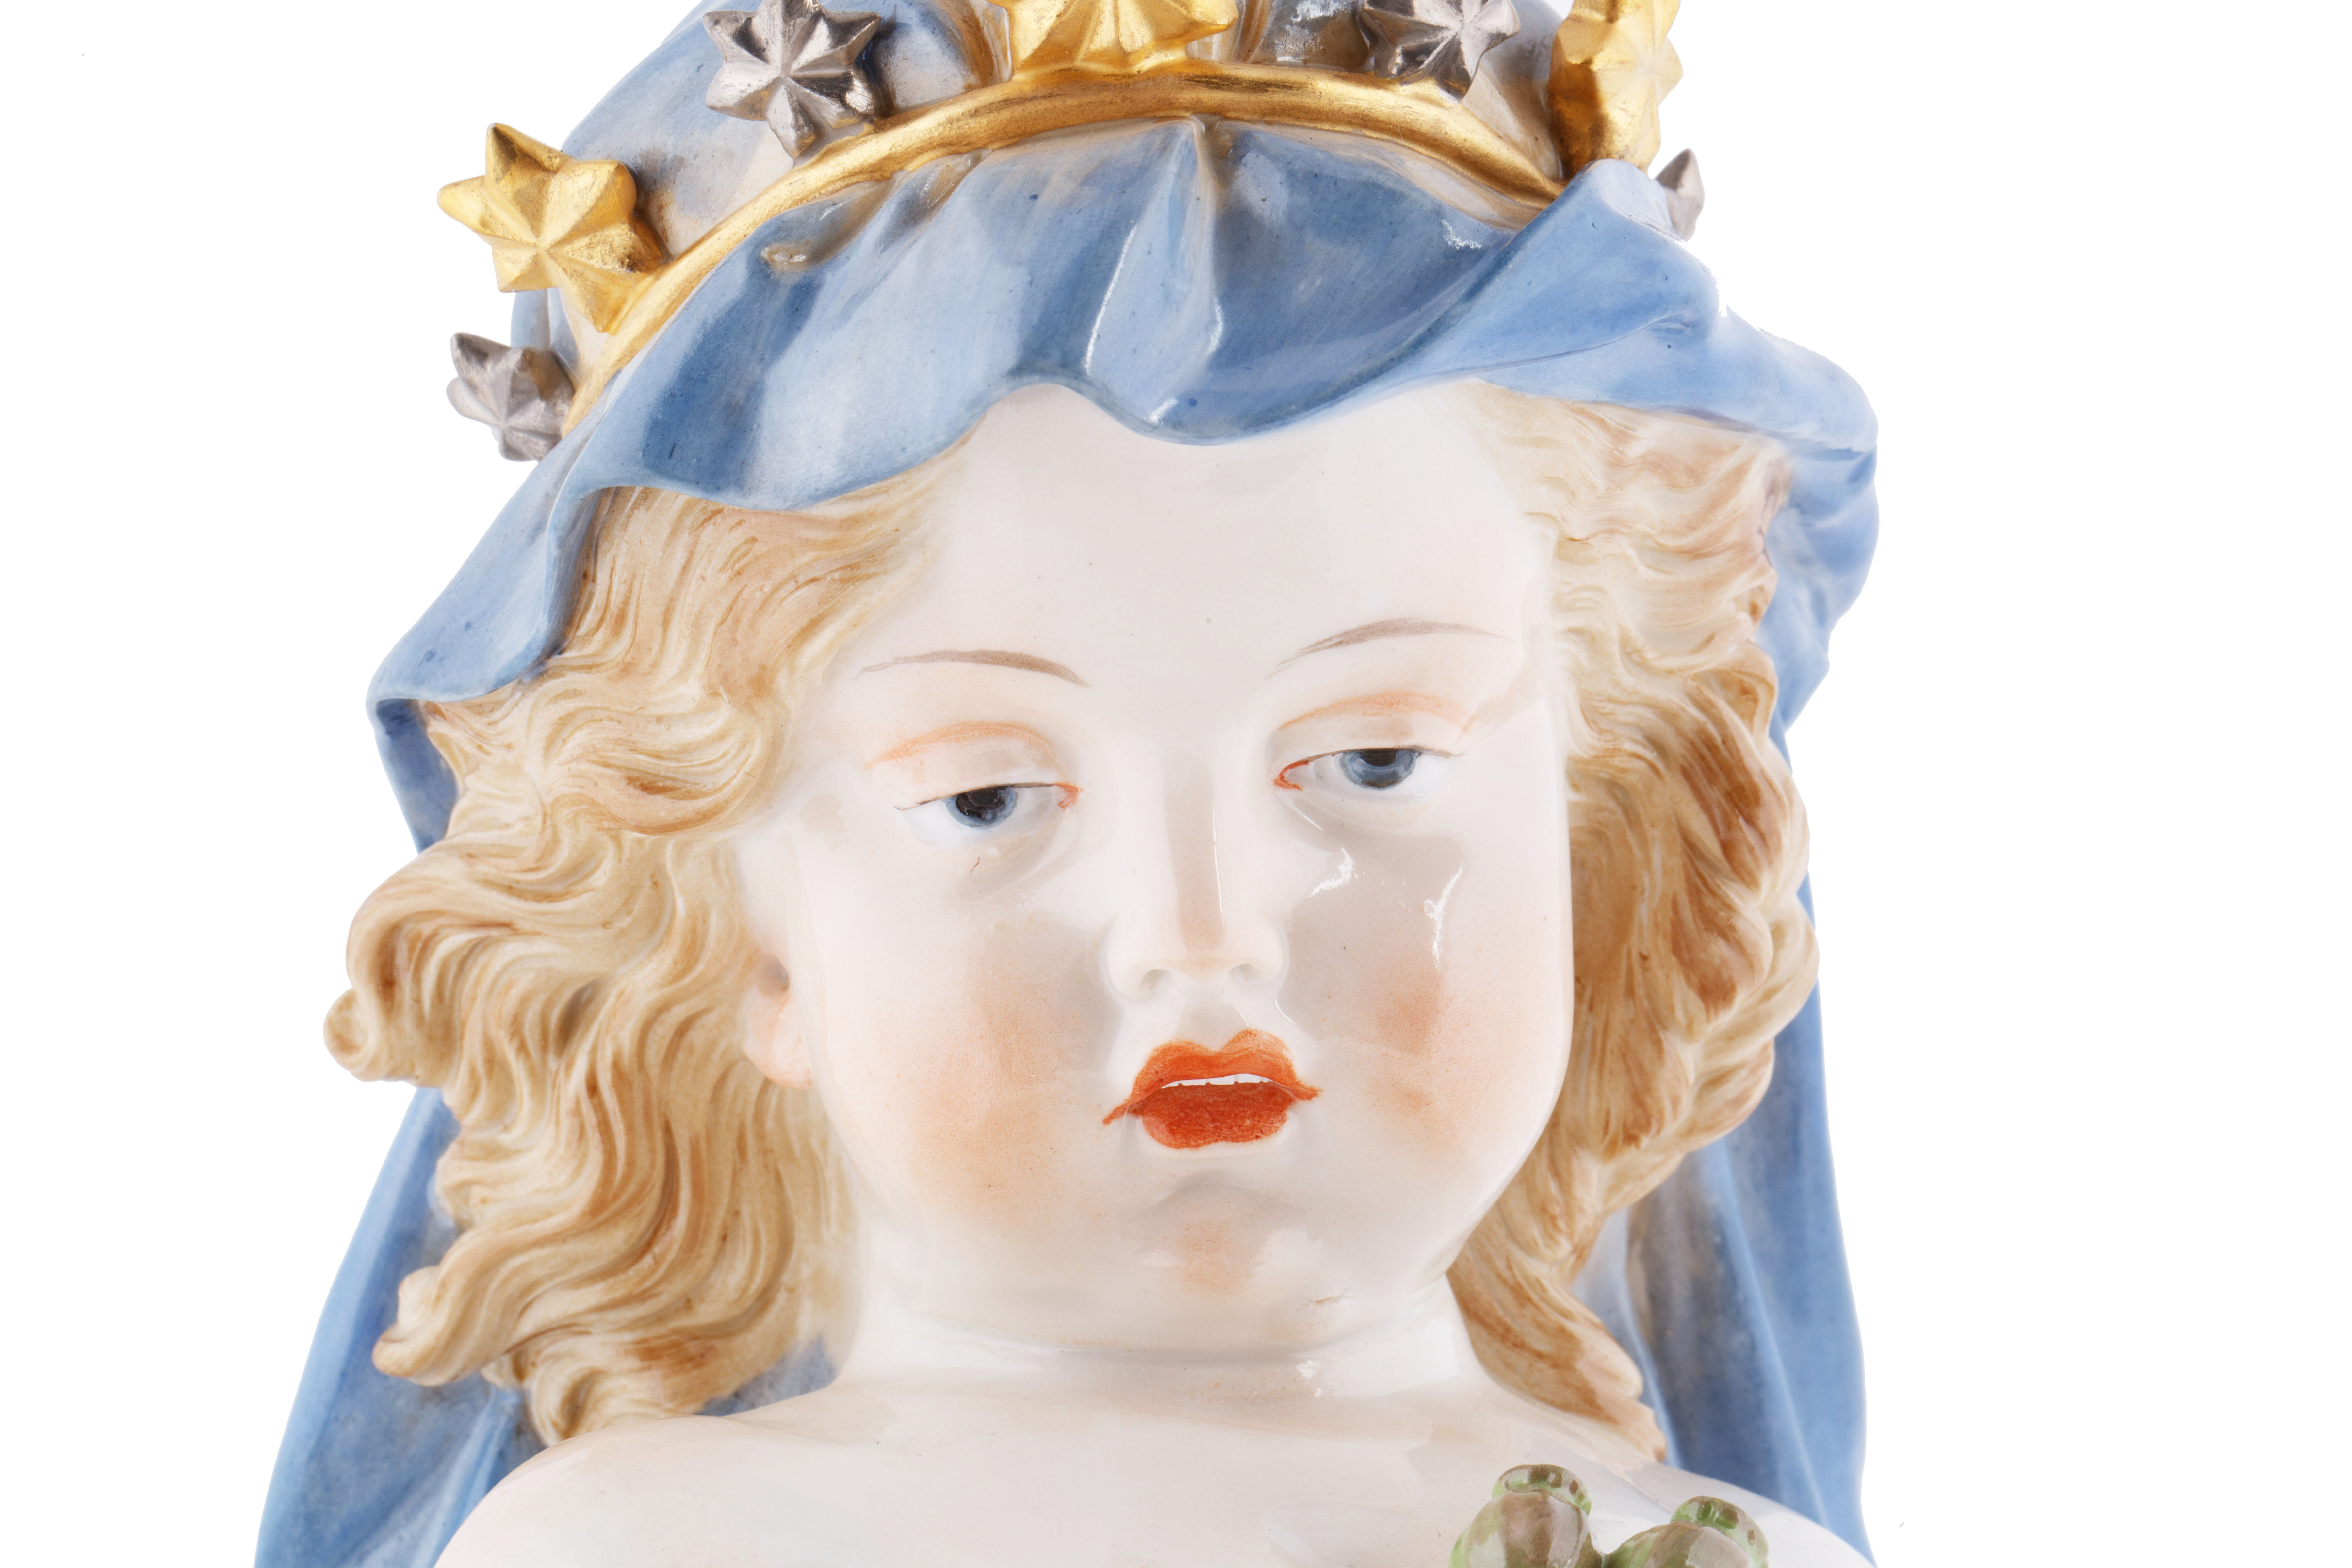 """LATE 19TH CENTURY MEISSEN PORCELAIN FIGURINE EMBLEMATIC OF """"NIGHT"""" - Image 3 of 6"""